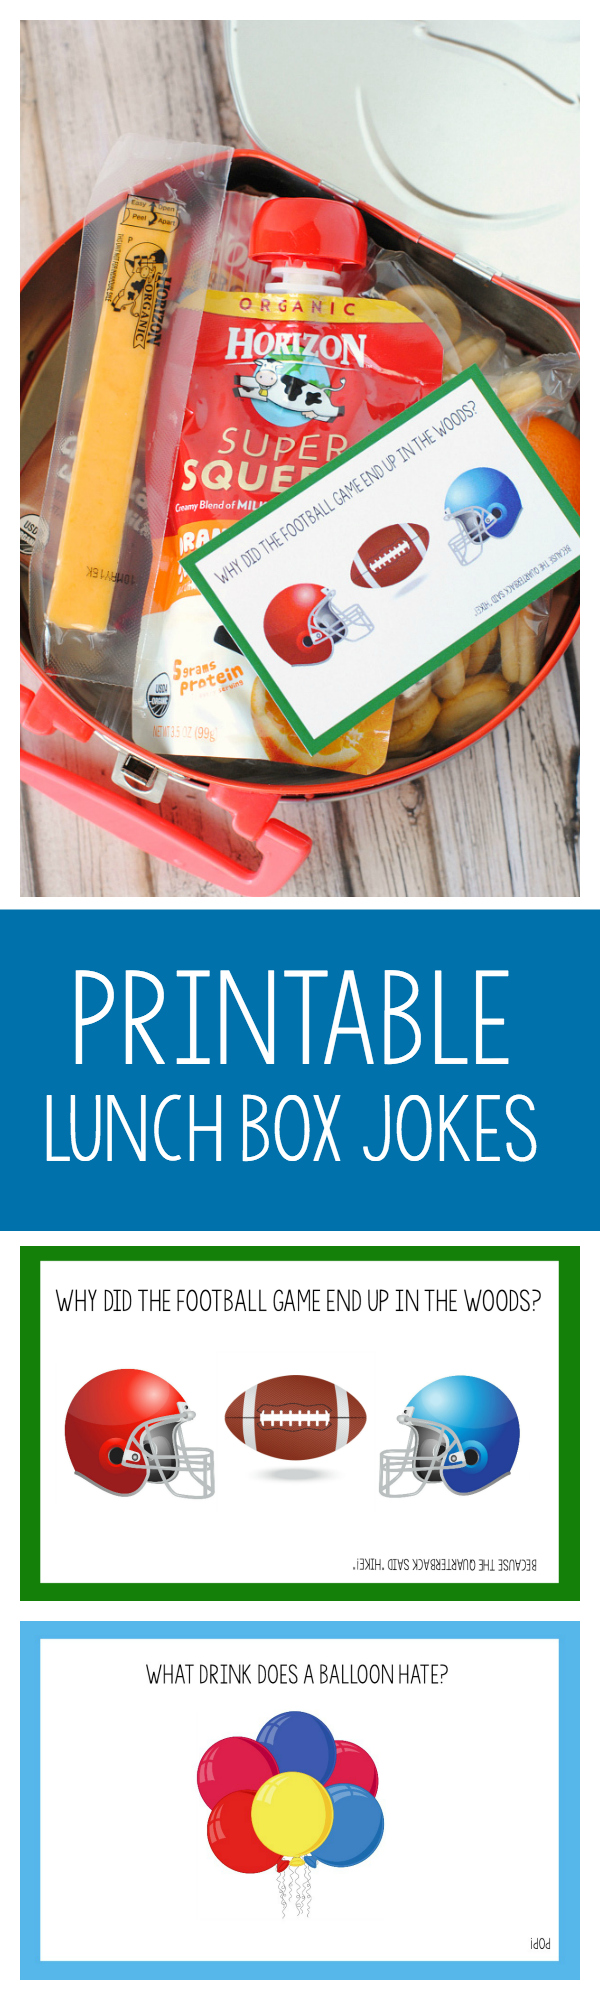 Free Printable Lunch Box Jokes for Kids